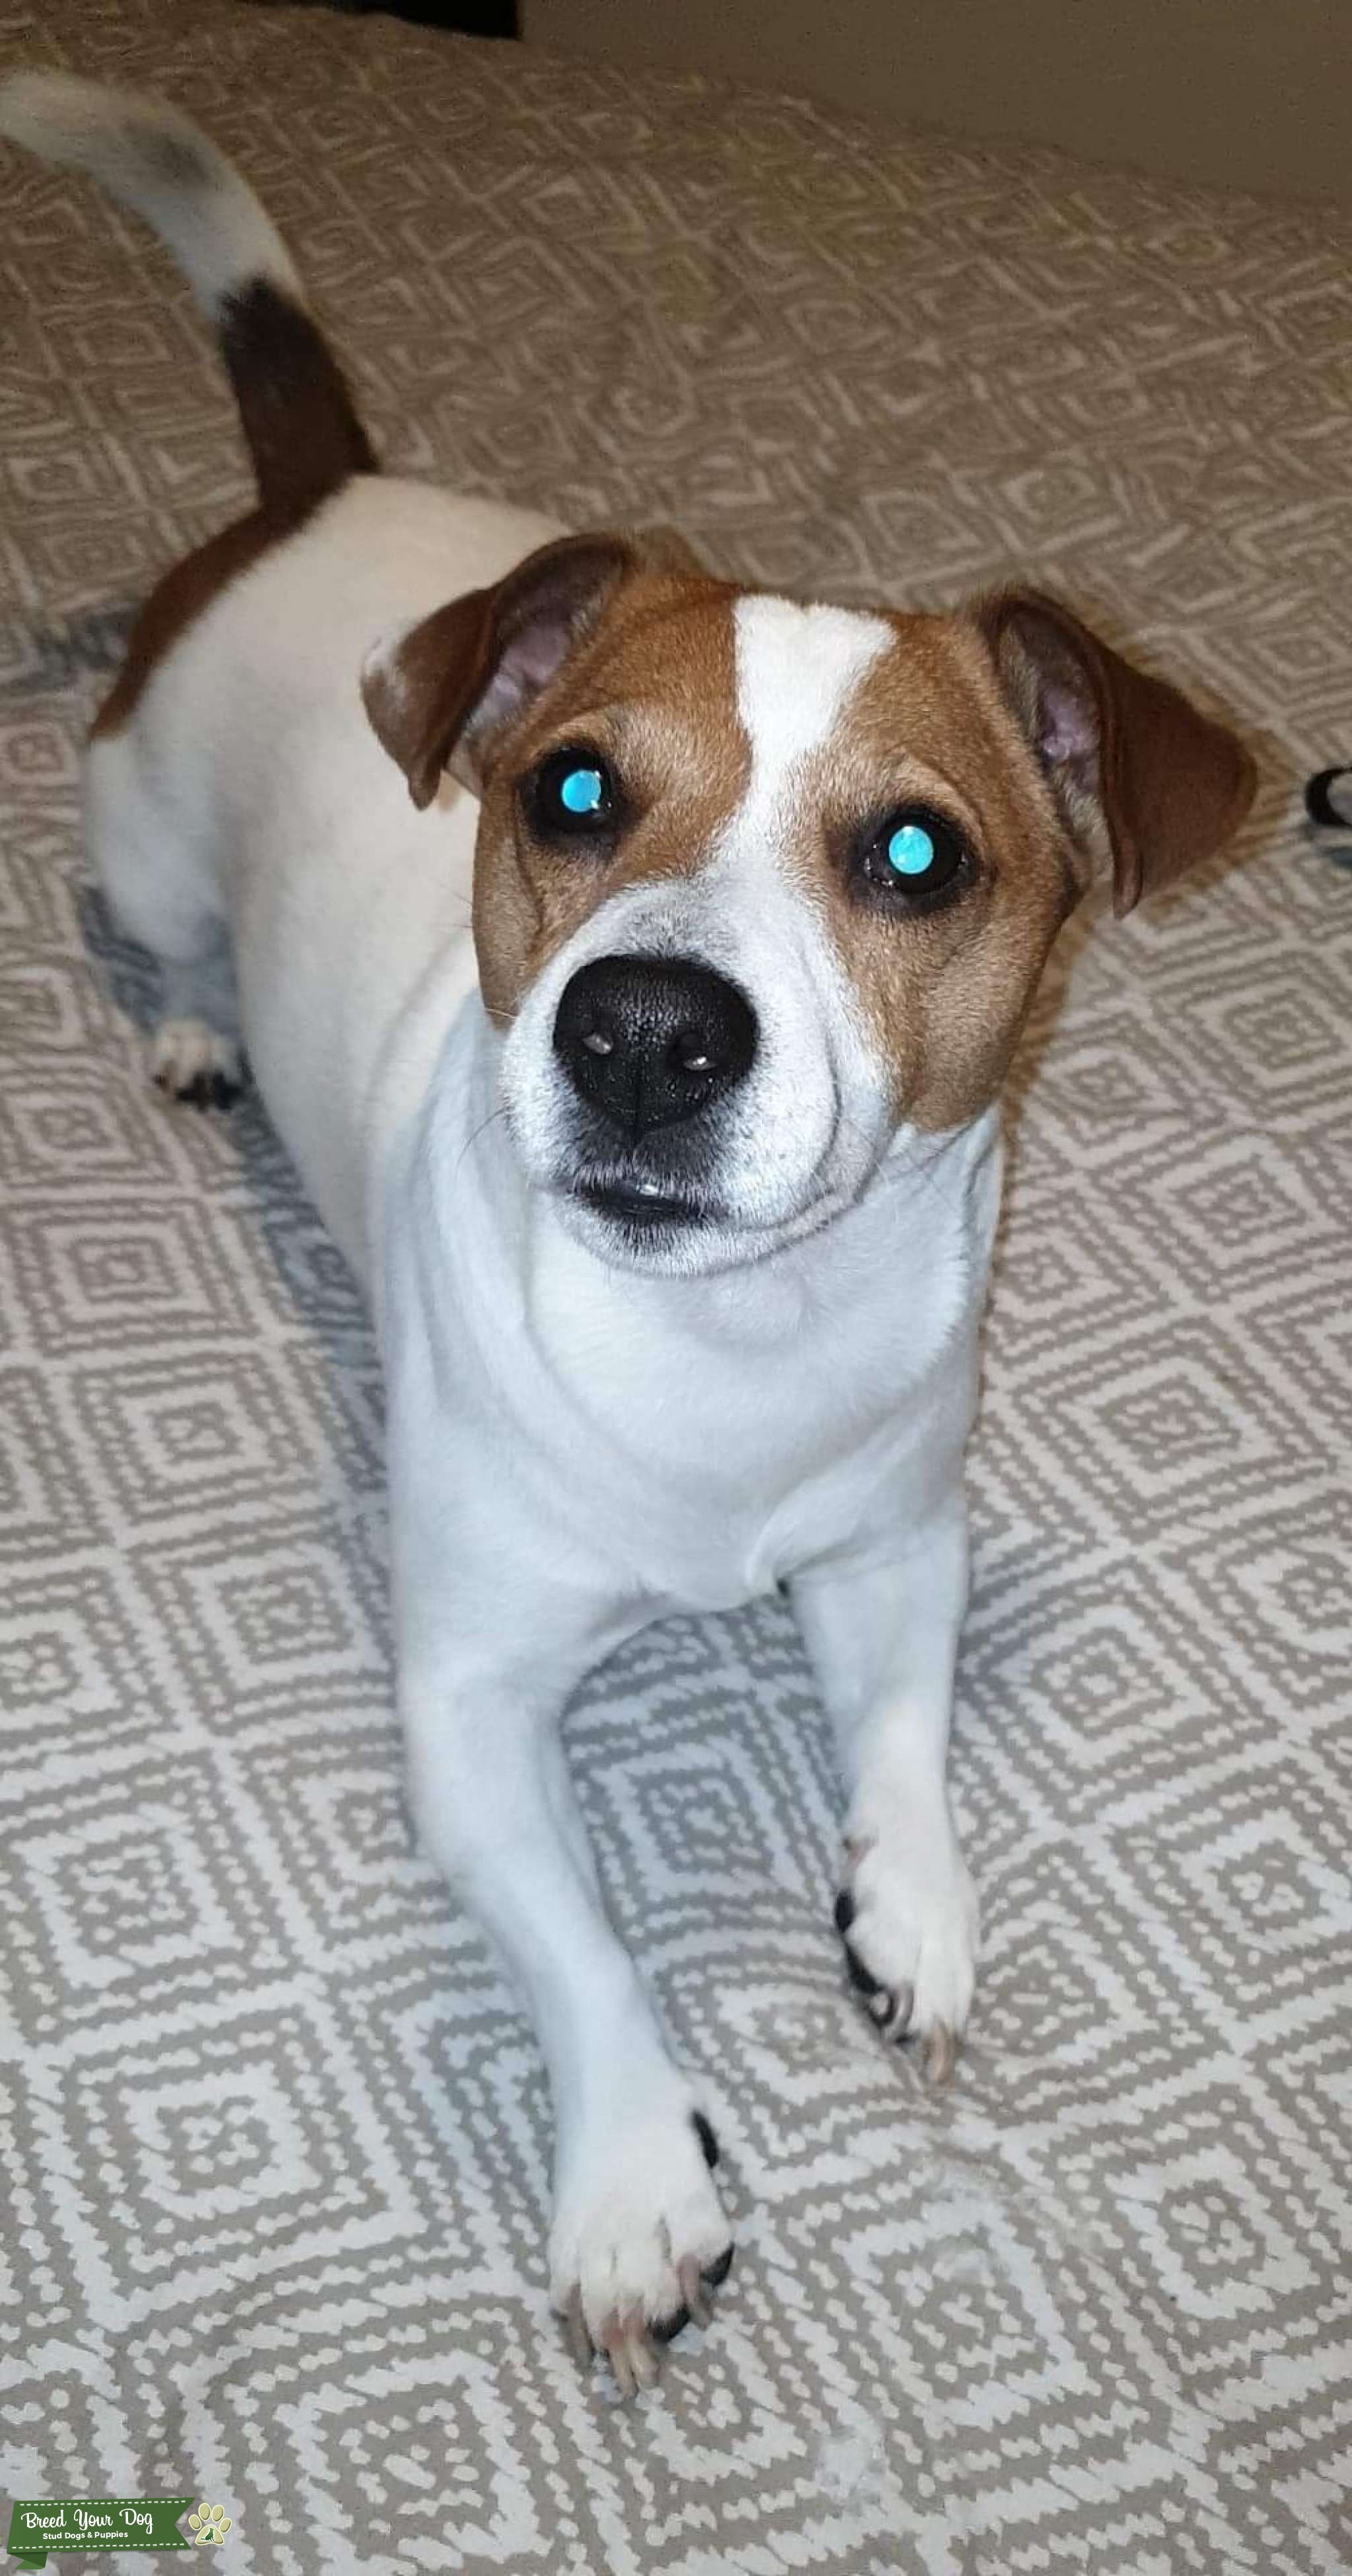 Jack Russell white with brown patches over the eyes beautiful dog  Listing Image Big